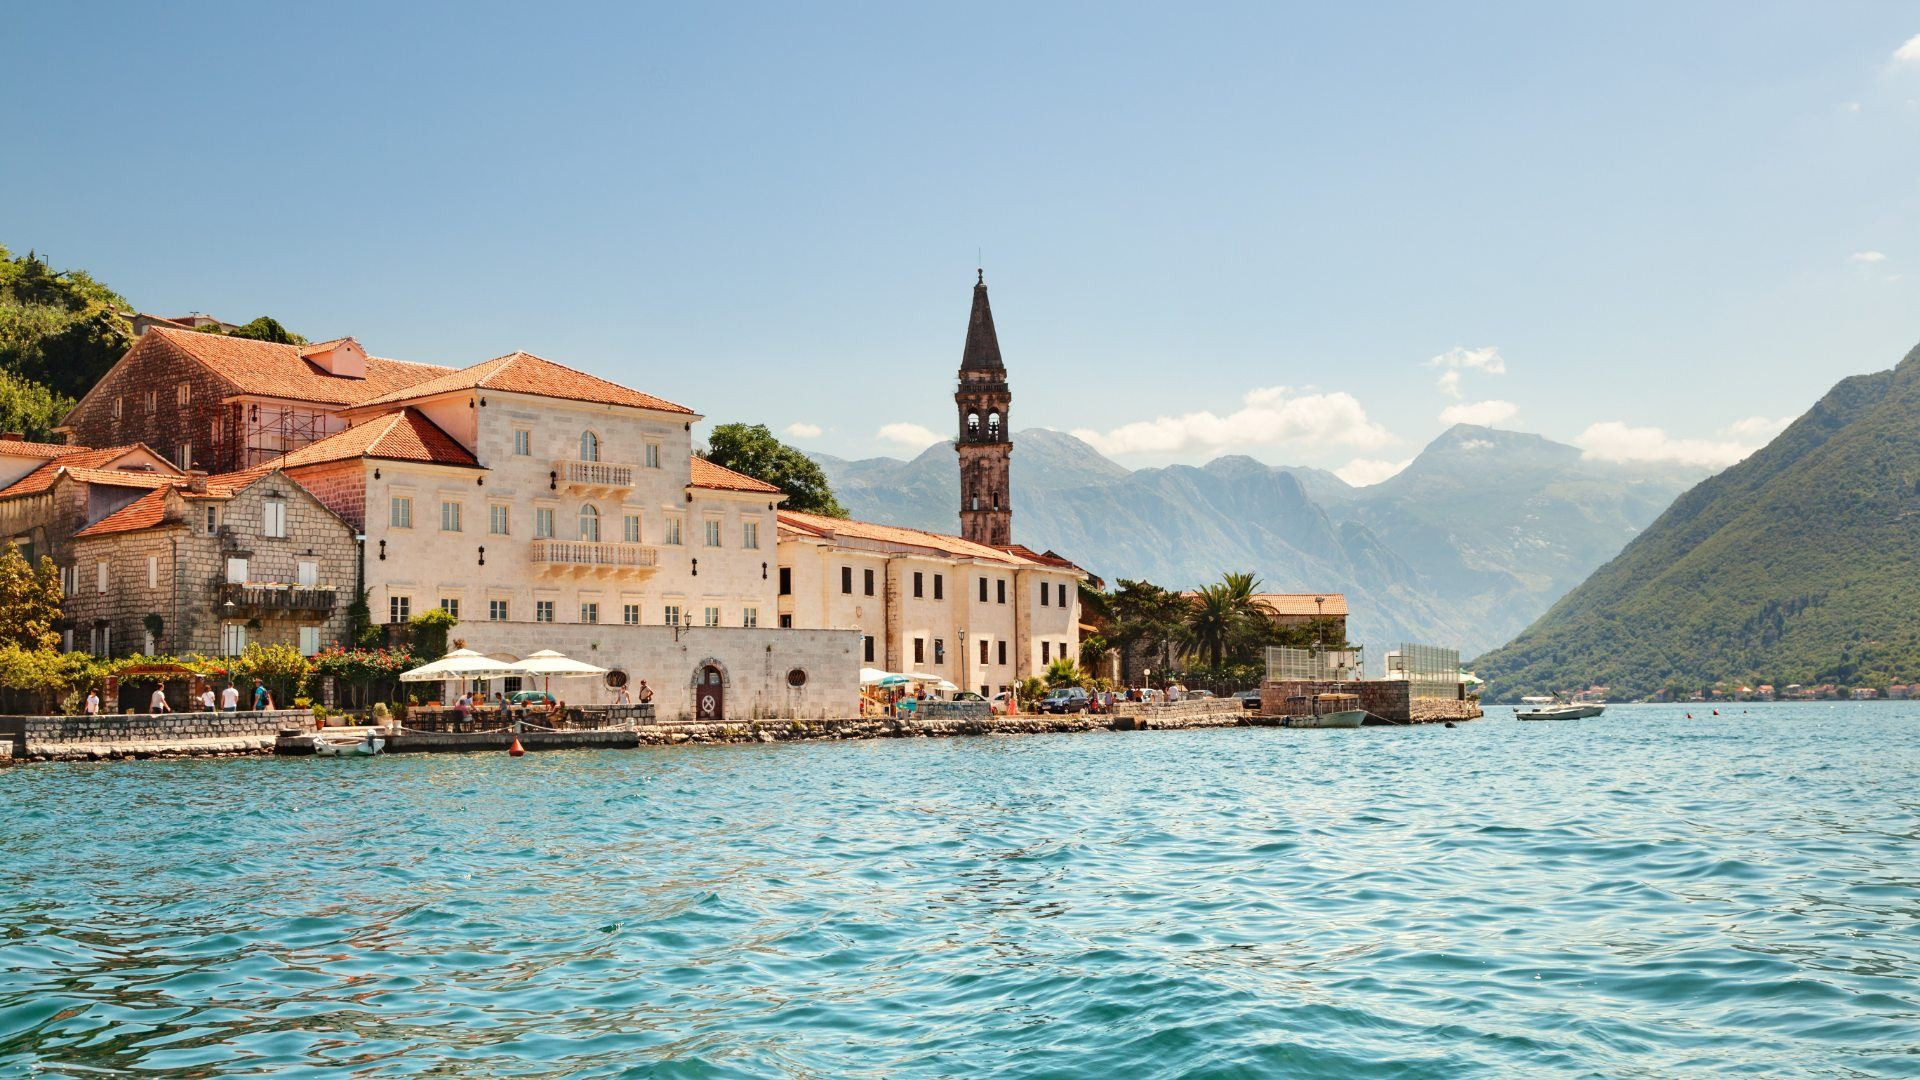 Perast - Adriatic Sea | Croatia Cruise Croatia Cruise